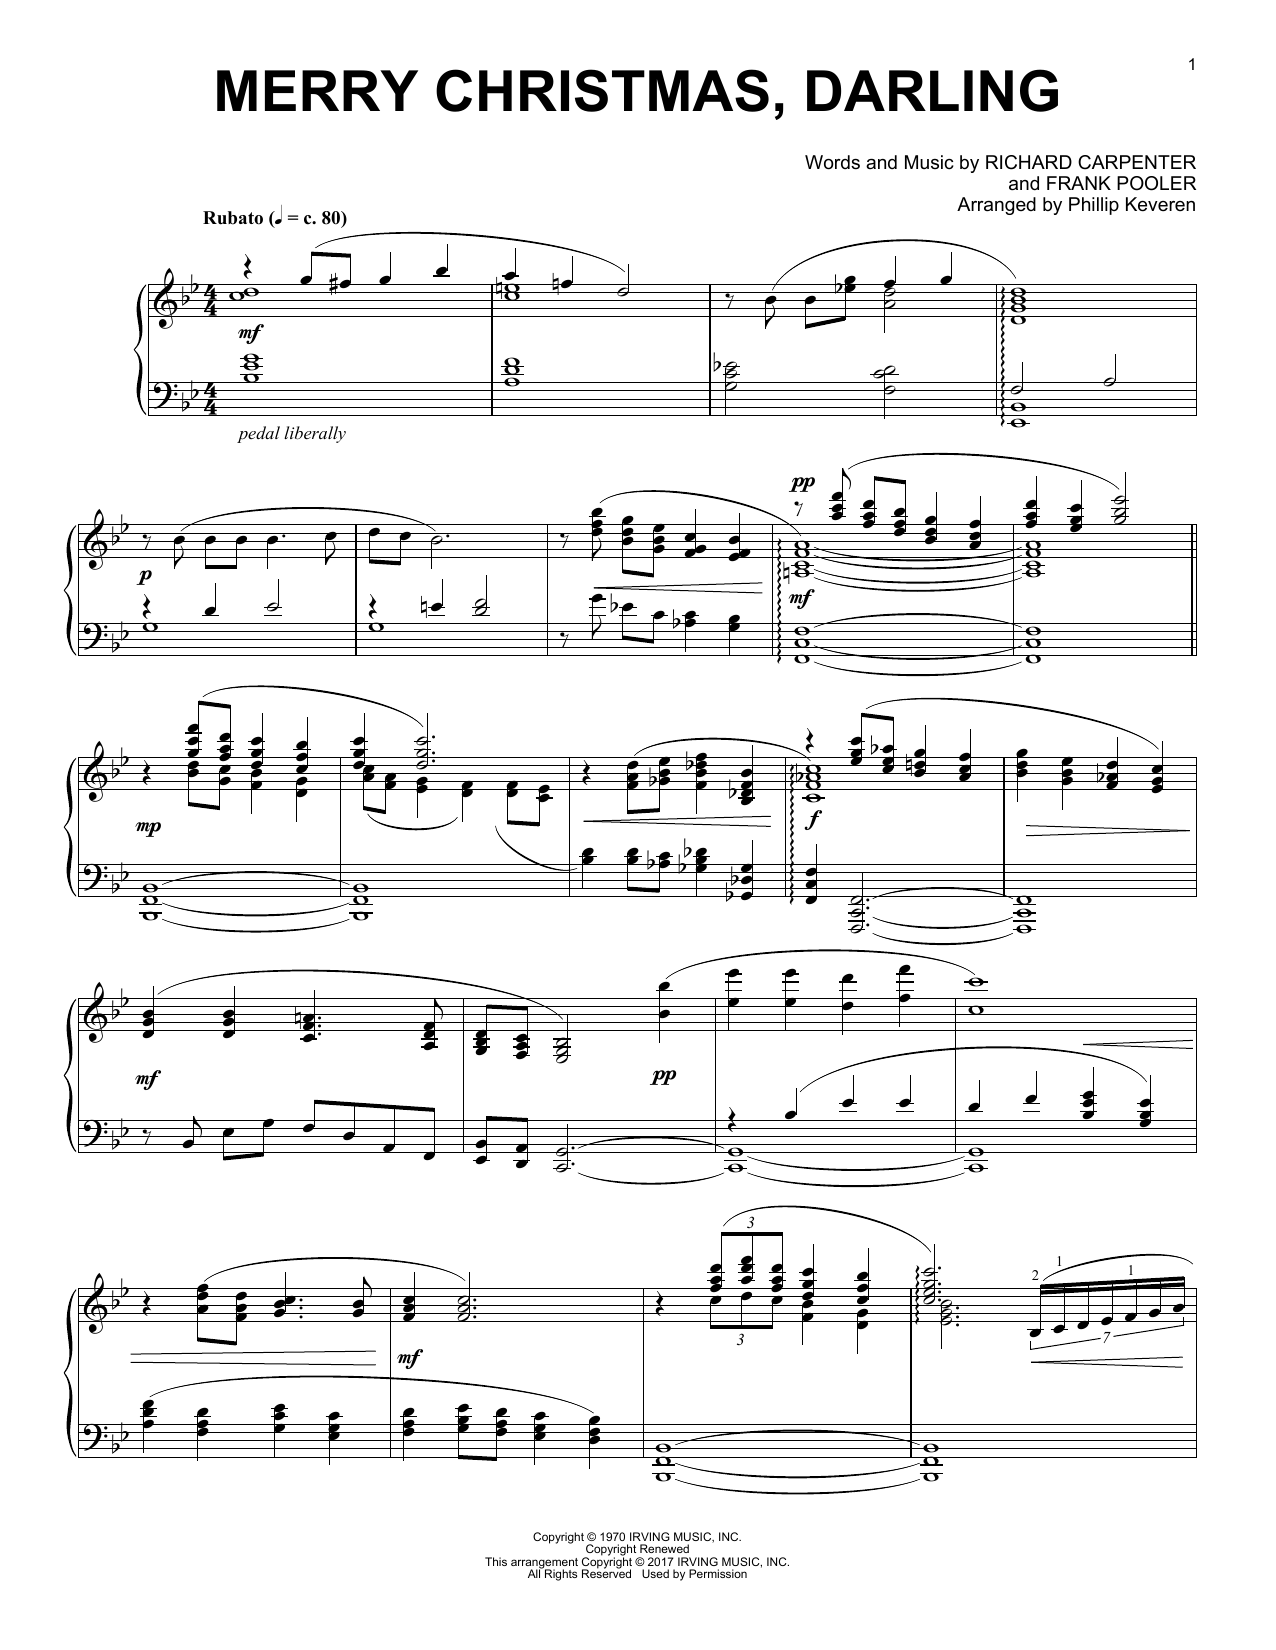 Merry Christmas, Darling [Classical version] (arr. Phillip Keveren) (Piano Solo)